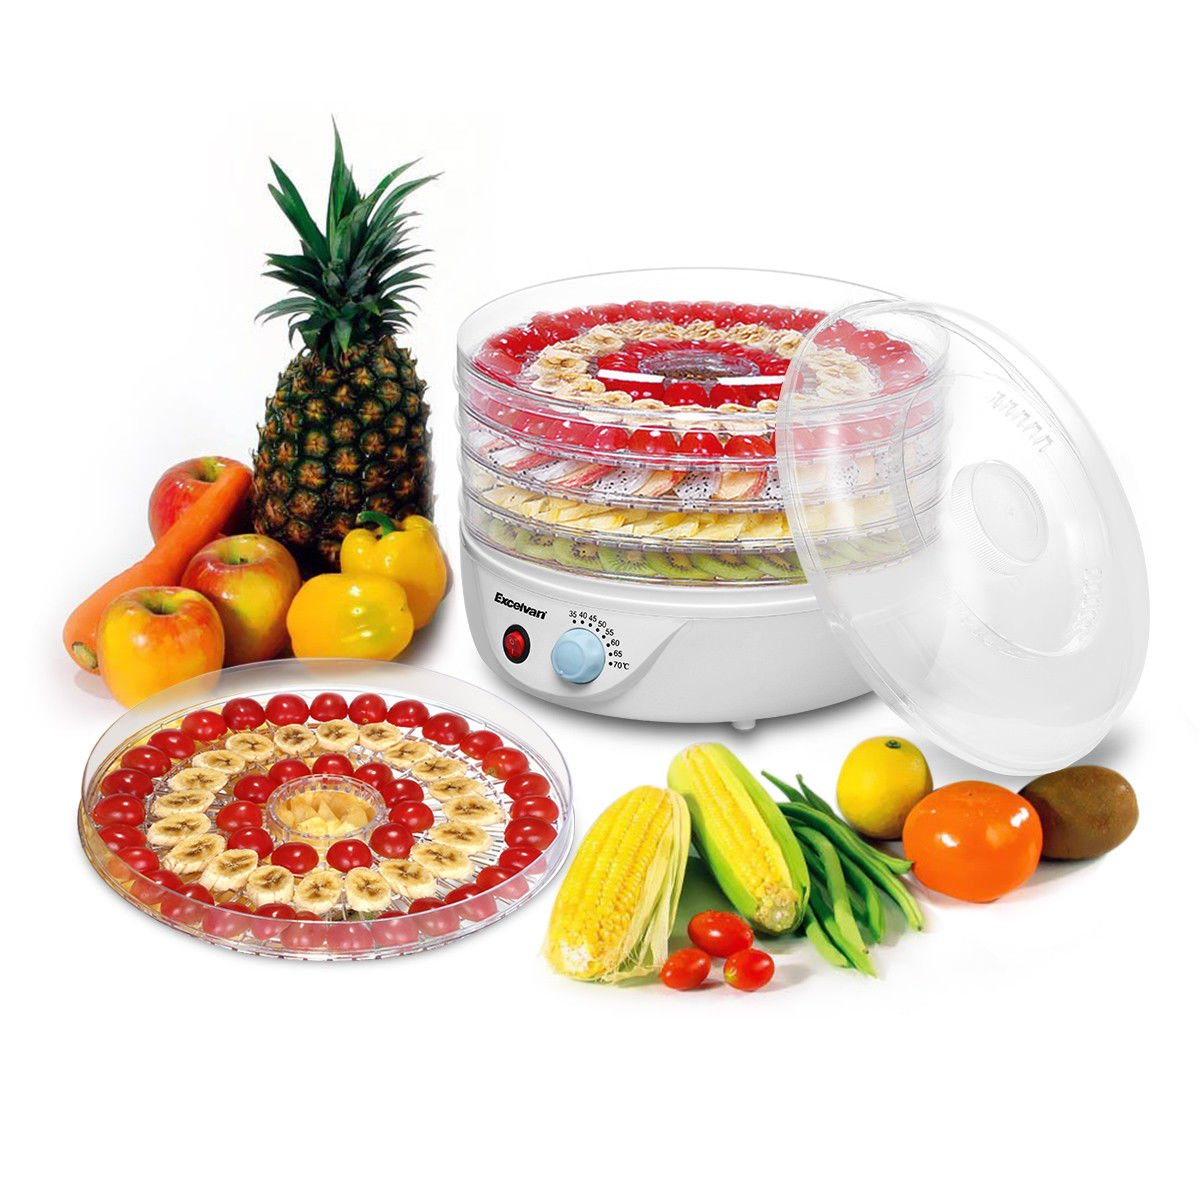 Unbrand/Great supply Electric Food Dehydrator Fruit Vegetable Dryer by Unbrand/Great supply (Image #4)